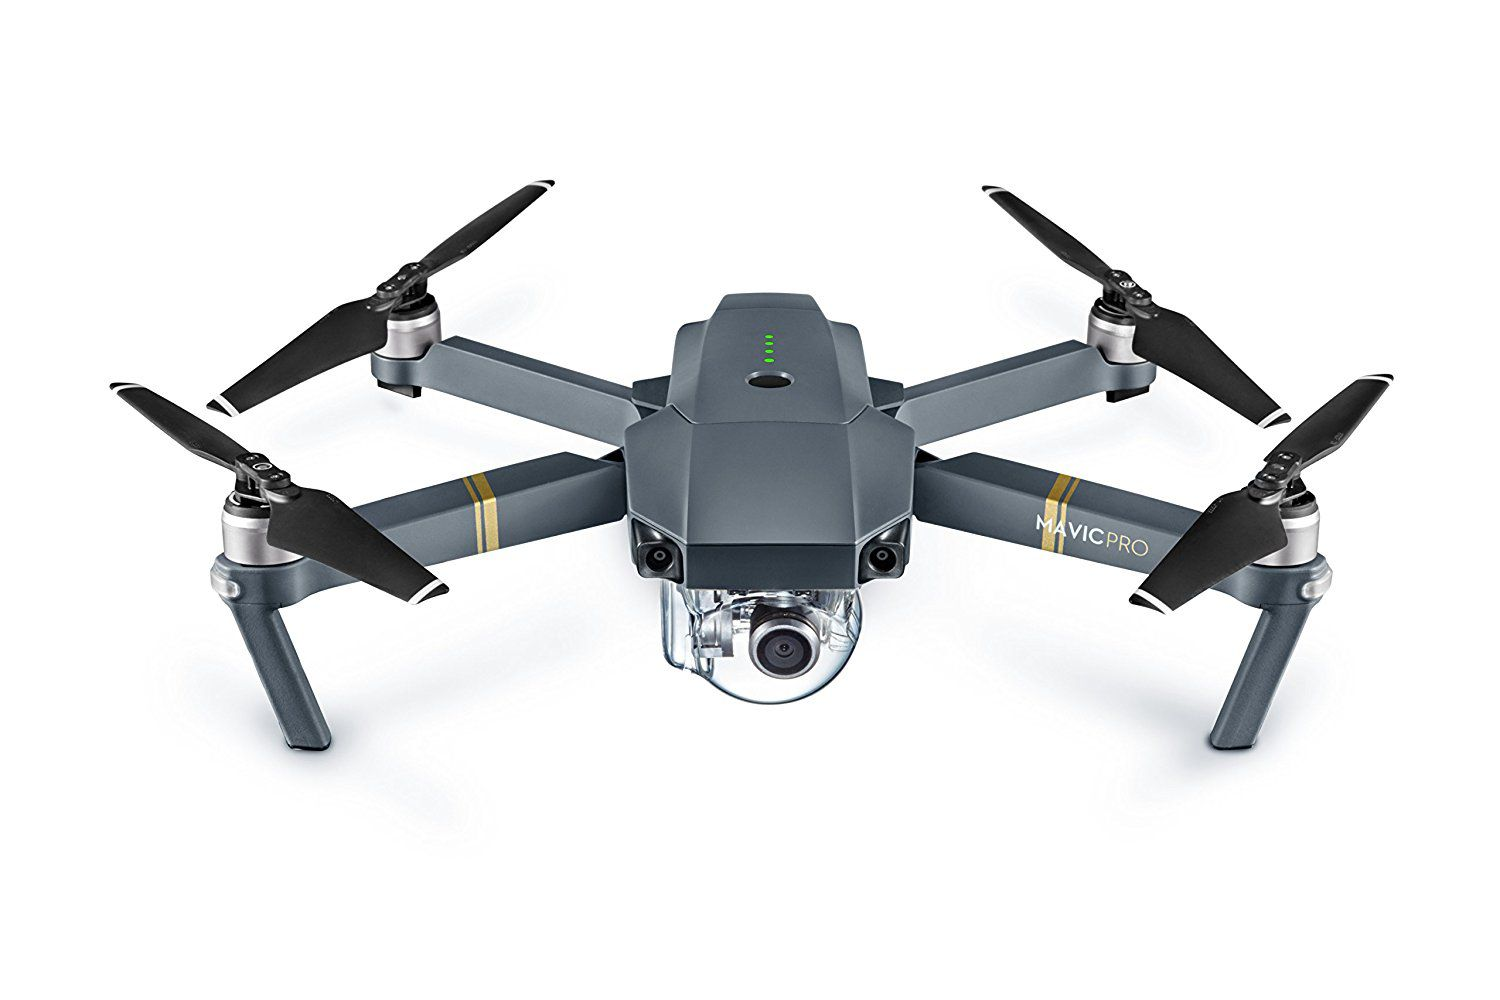 Best Dji Drone >> The 11 Best Drones Of 2019